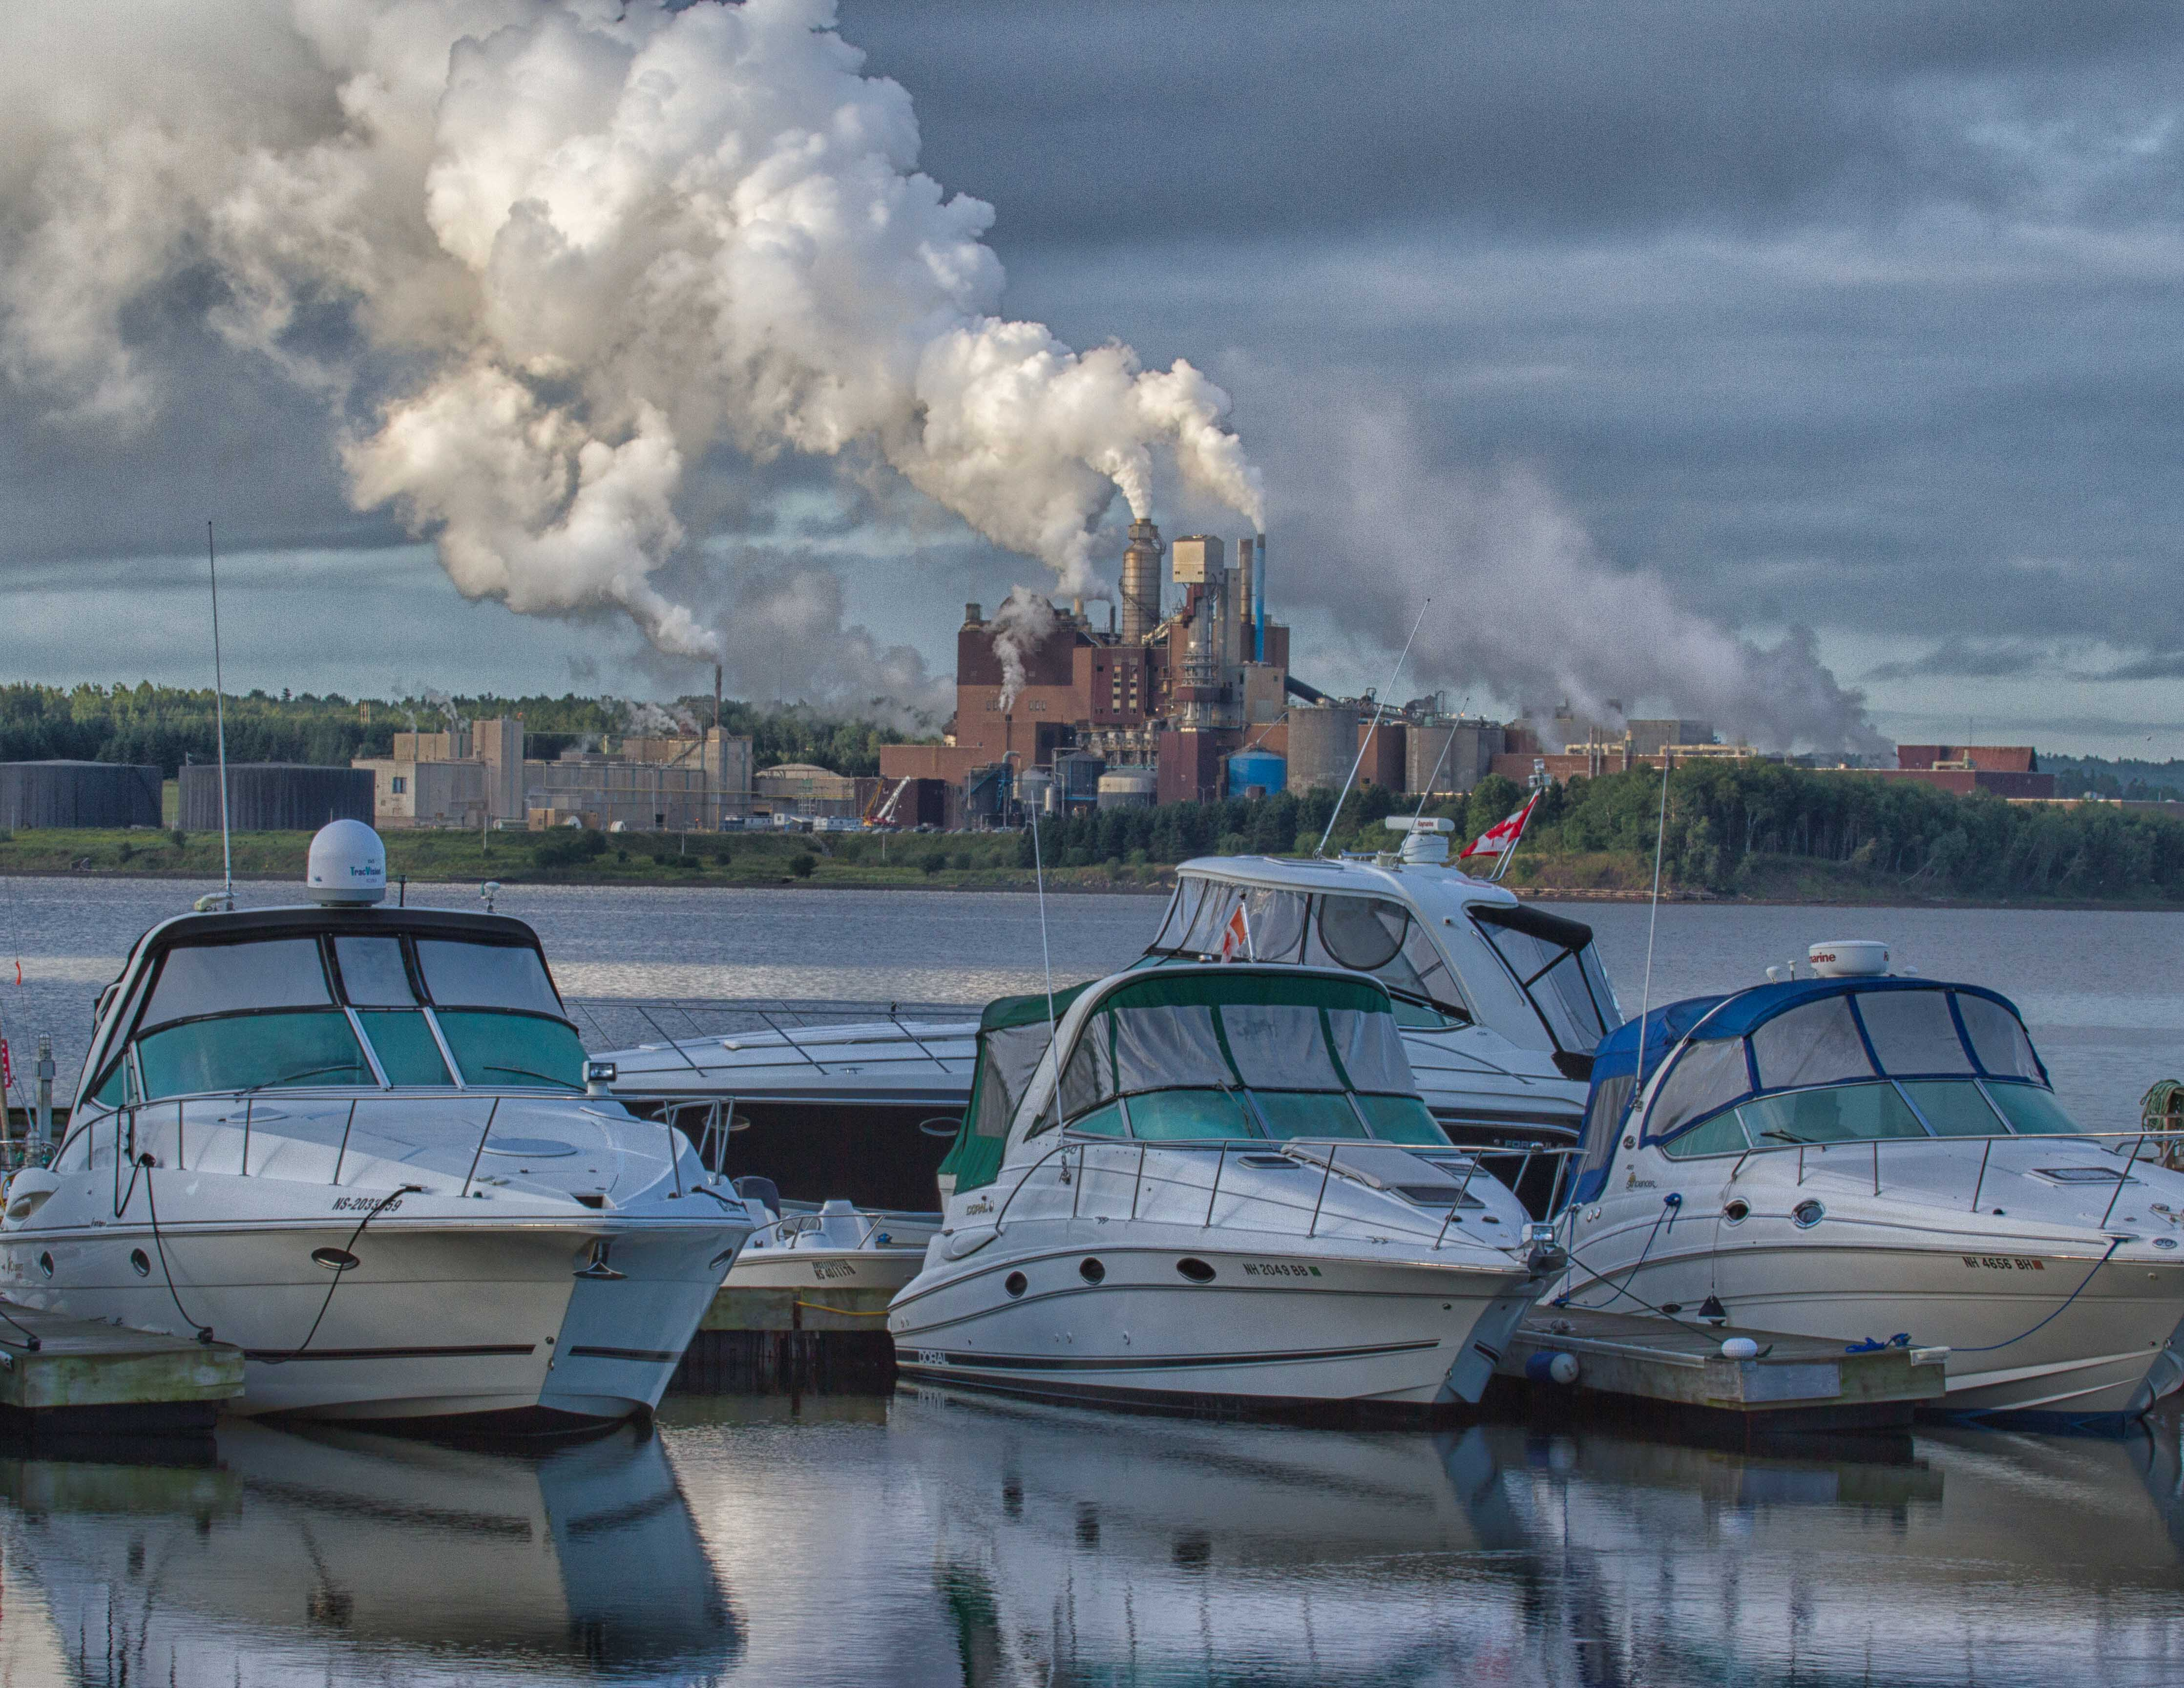 The pulp mill is a constant and smelly backdrop in Pictou. Photo by Dr. Gerry Farrell